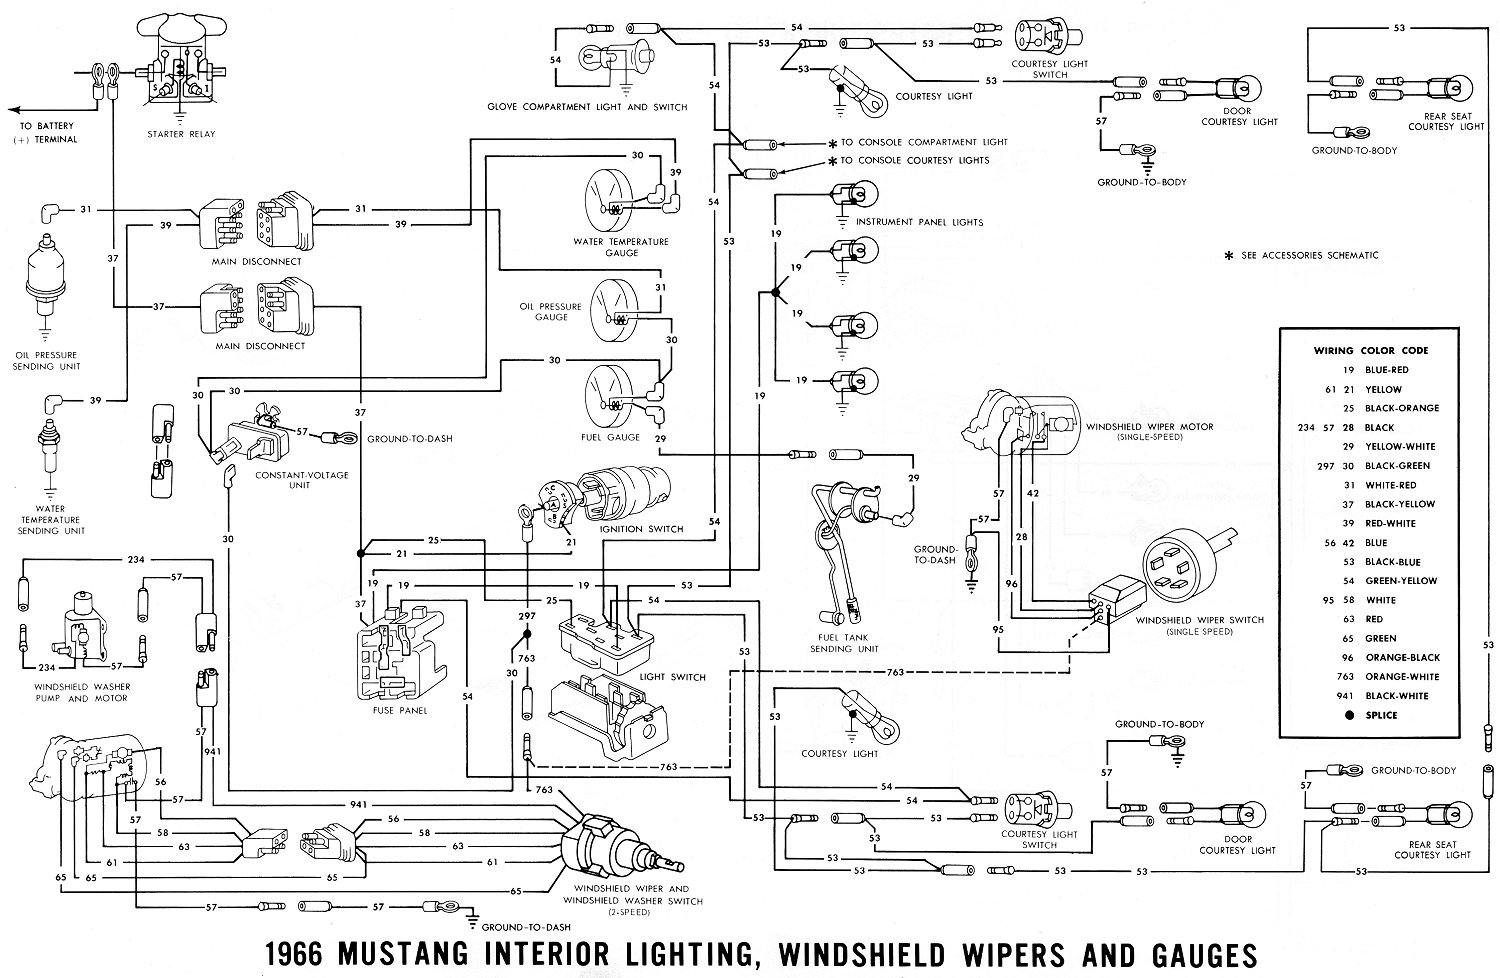 66inter1 1966 mustang wiring diagrams average joe restoration 68 mustang headlight wiring diagram at edmiracle.co